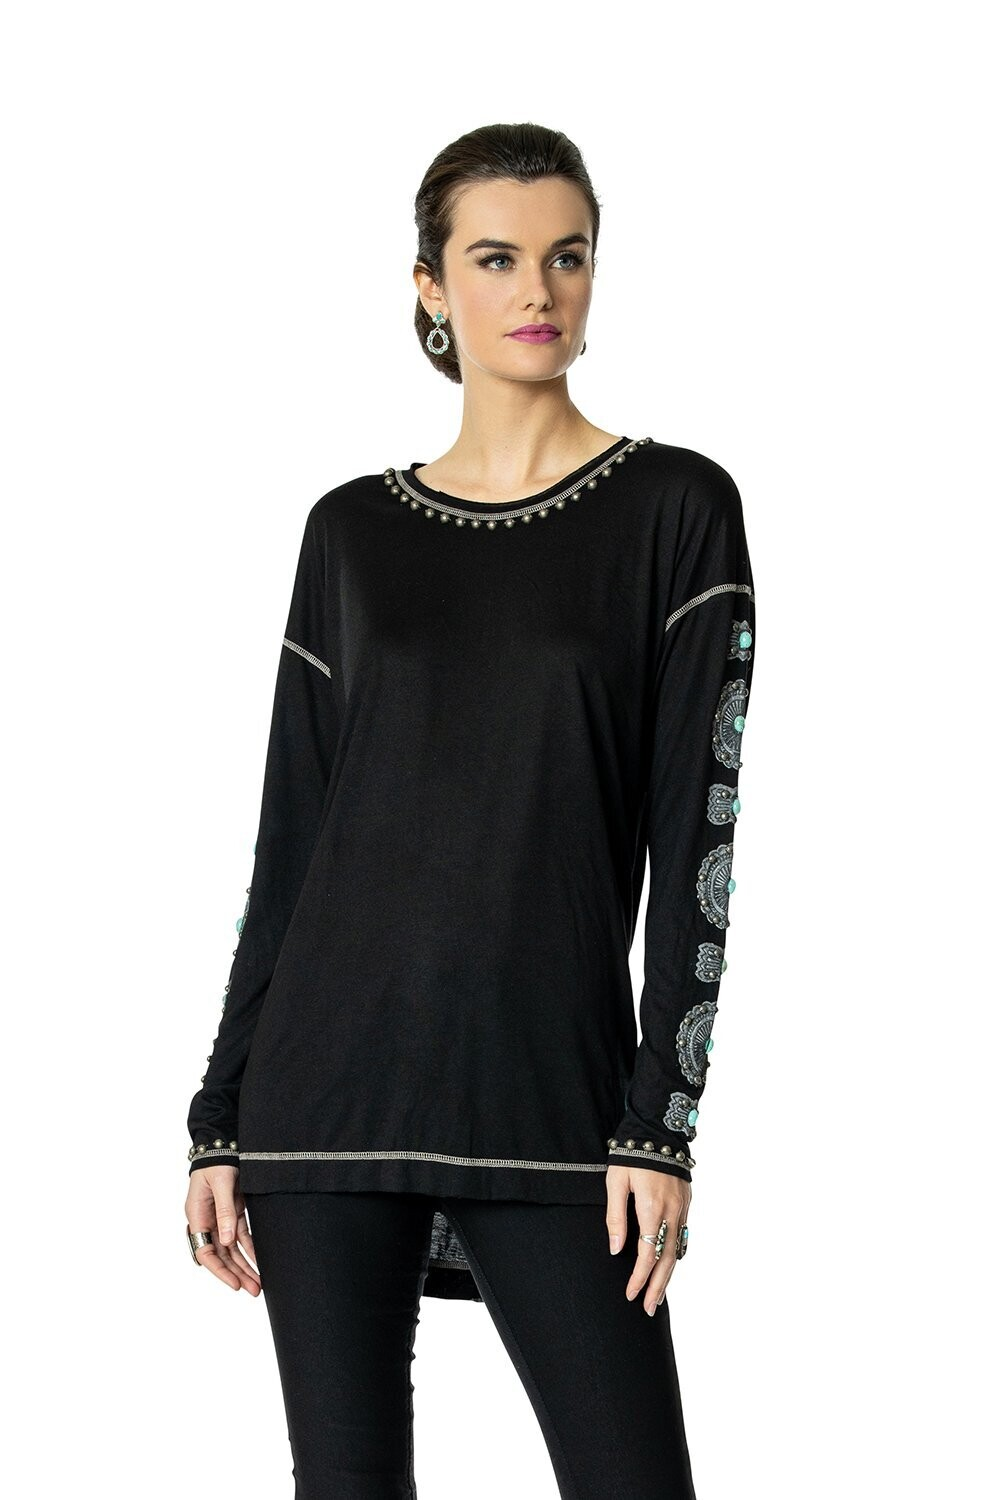 Double D T3528 3rd Phase Top